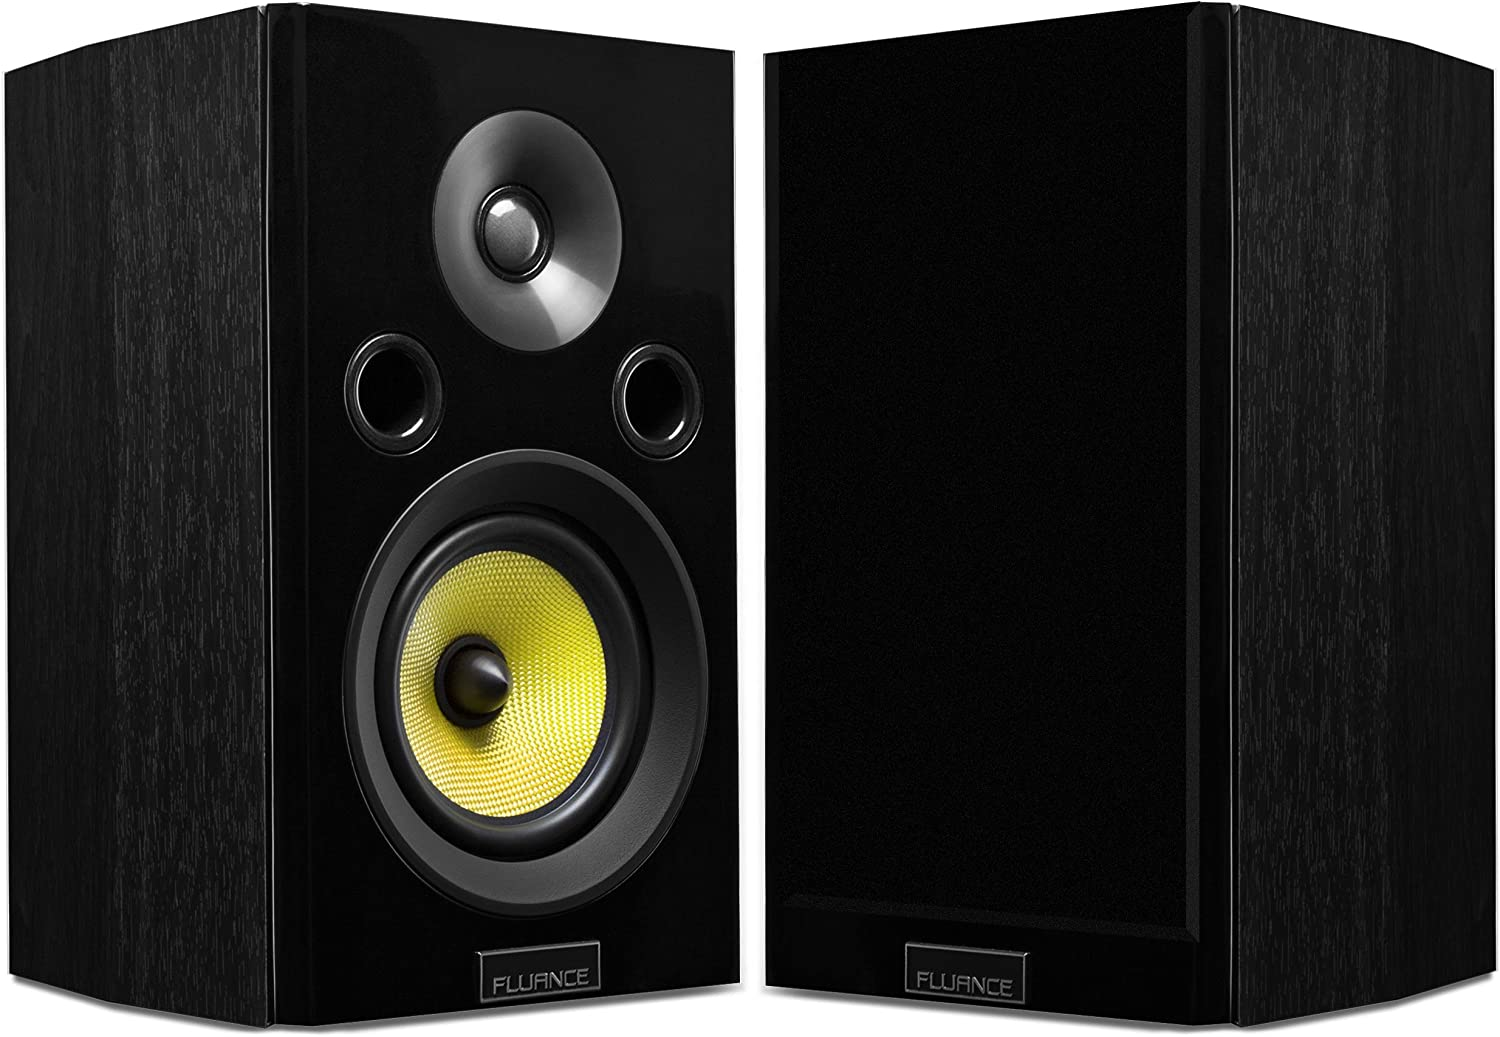 Fluance Signature Series HiFi Two-Way Bookshelf Surround Sound Speakers for Home Theater and Music Systems